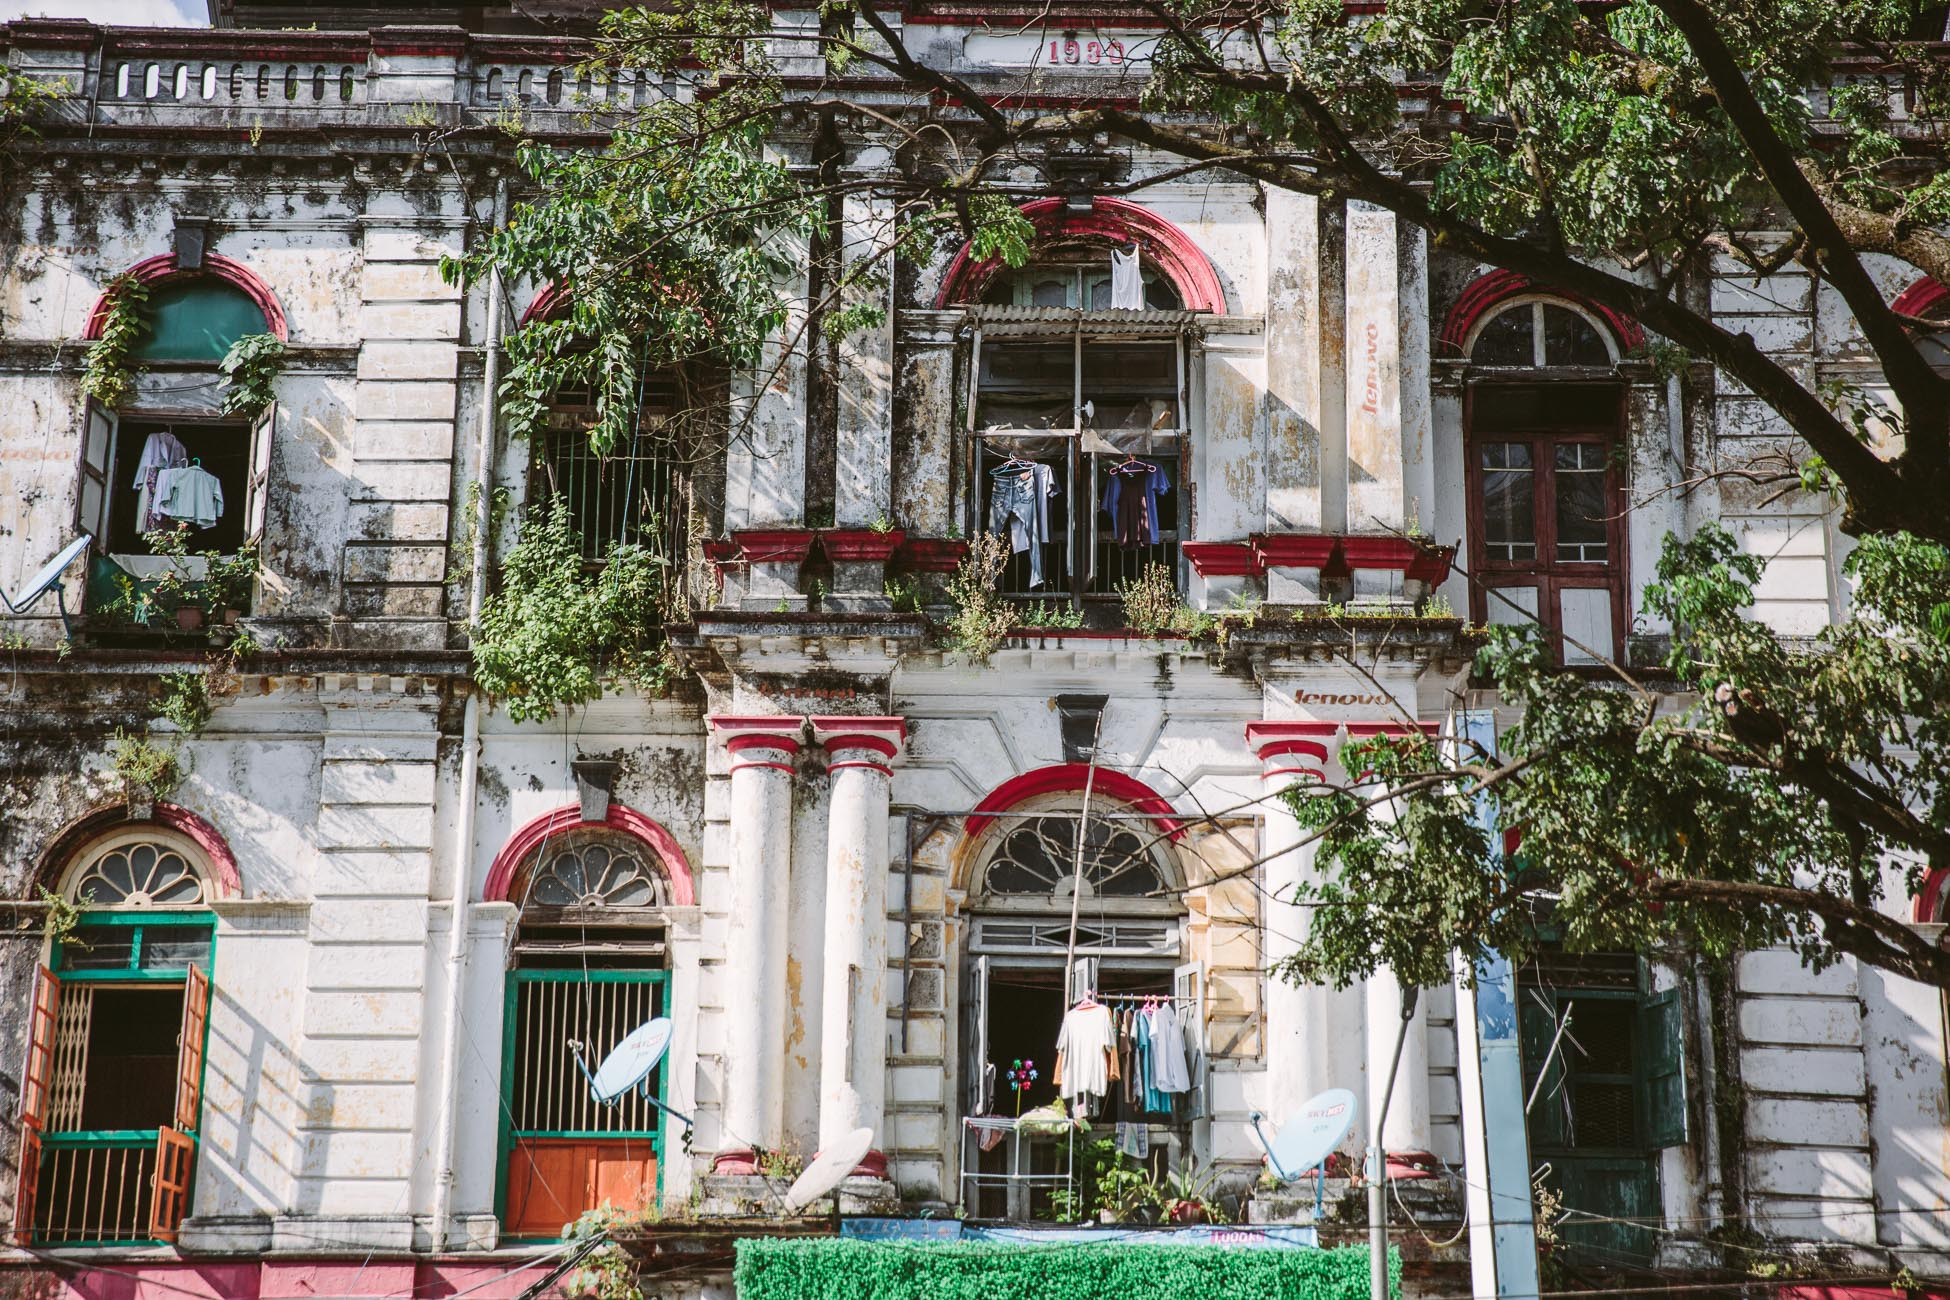 Architecture of Yangon Myanmar